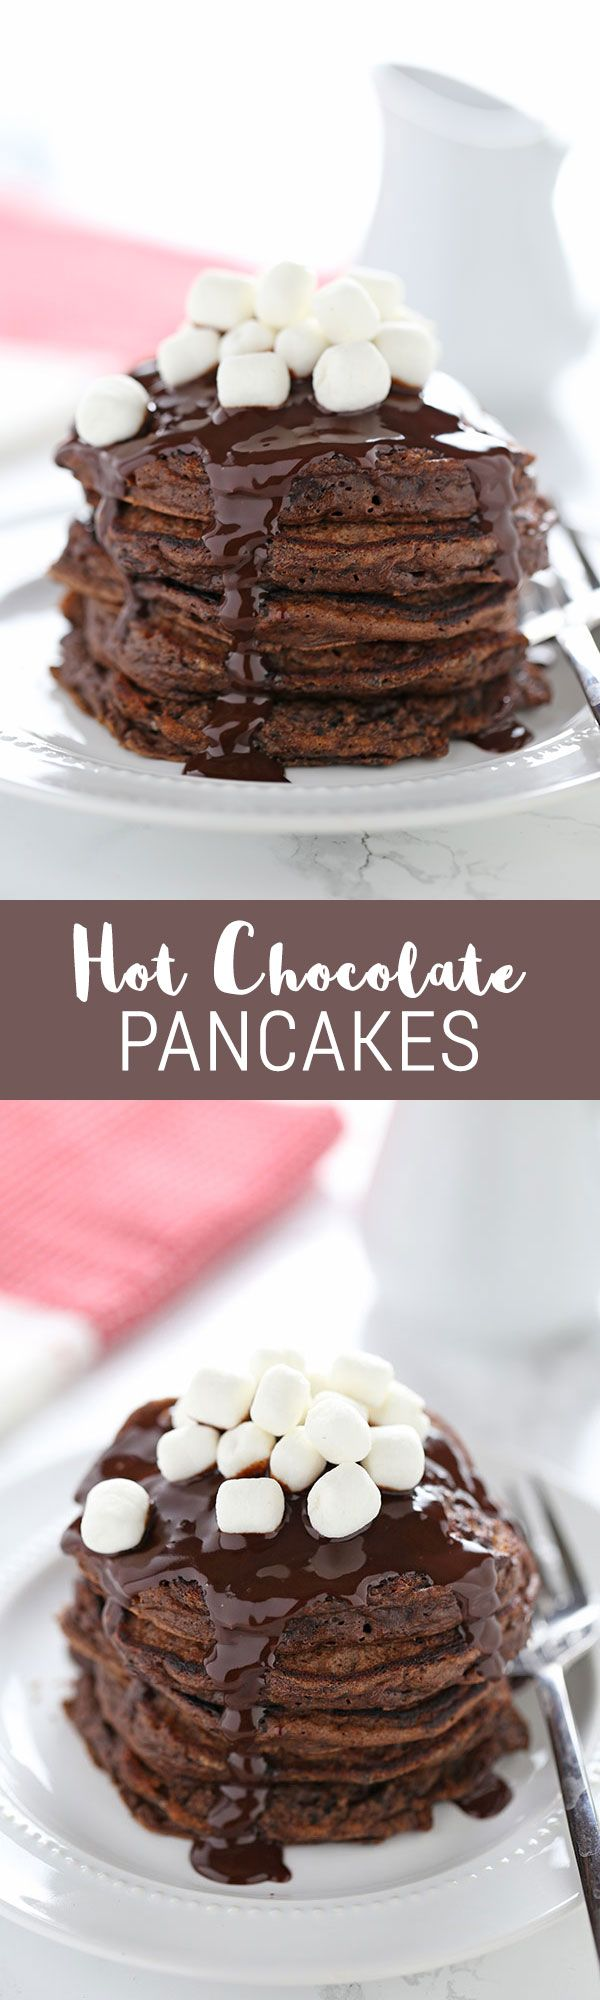 Make these for Christmas morning!! So delicious, and they take less than 30 minutes! We loved this Hot chocolate pancake recipe.